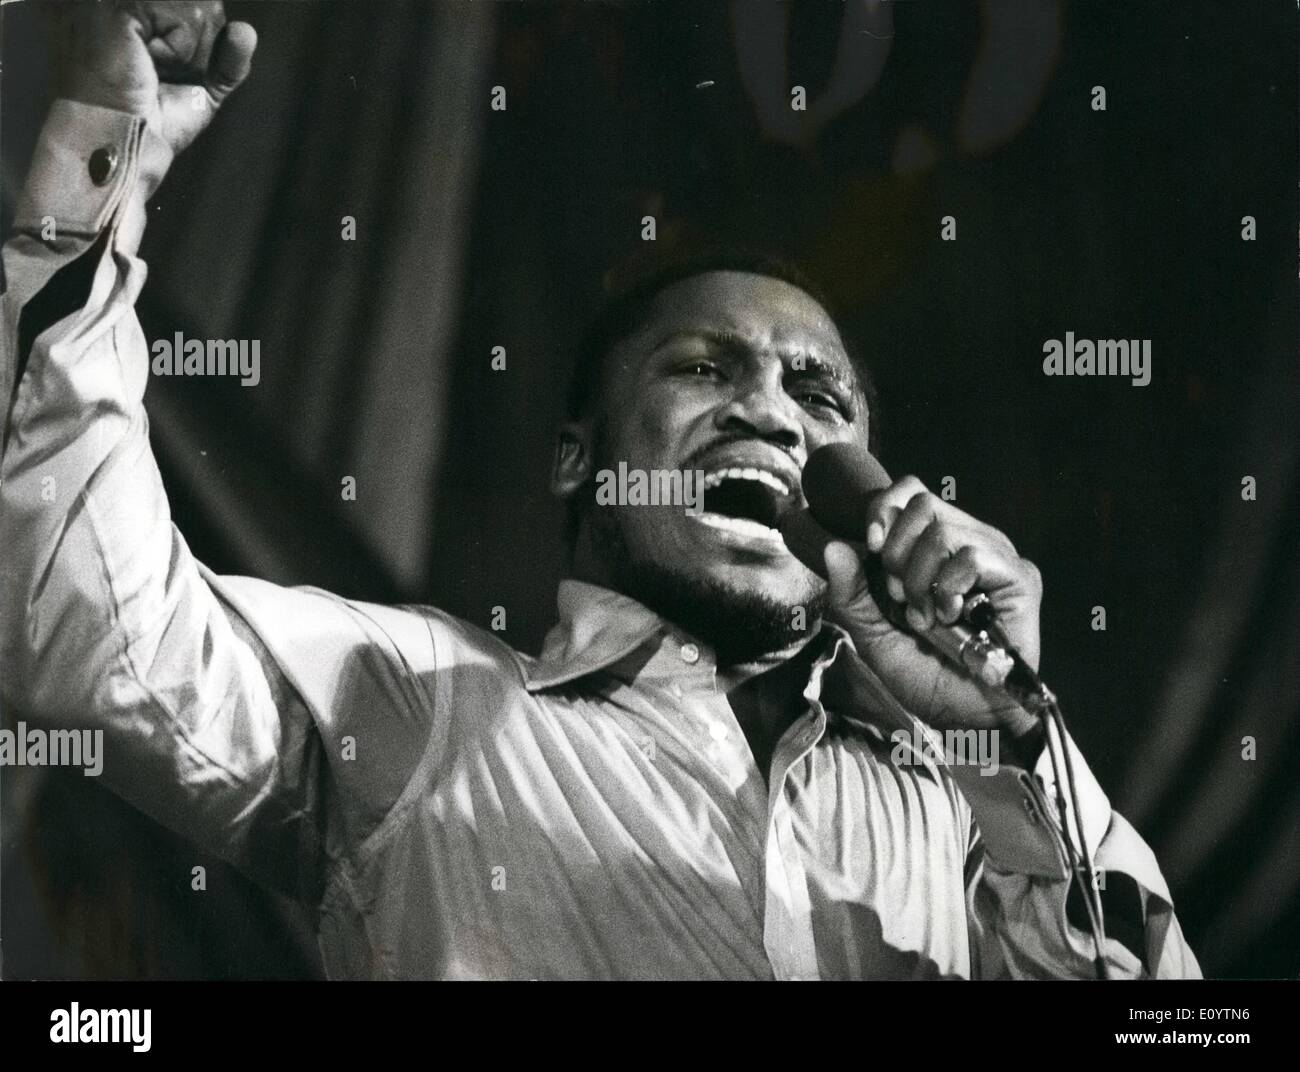 Jun. 06, 1971 - Joe Frazier Sings: Photo Shows World Heavyweight boxing champion Joe Frazier, pictured on stage during his singing appearance at the Granada Theatre, Tooting, last night. He supported by his musicians, The Knockouts. - Stock Image